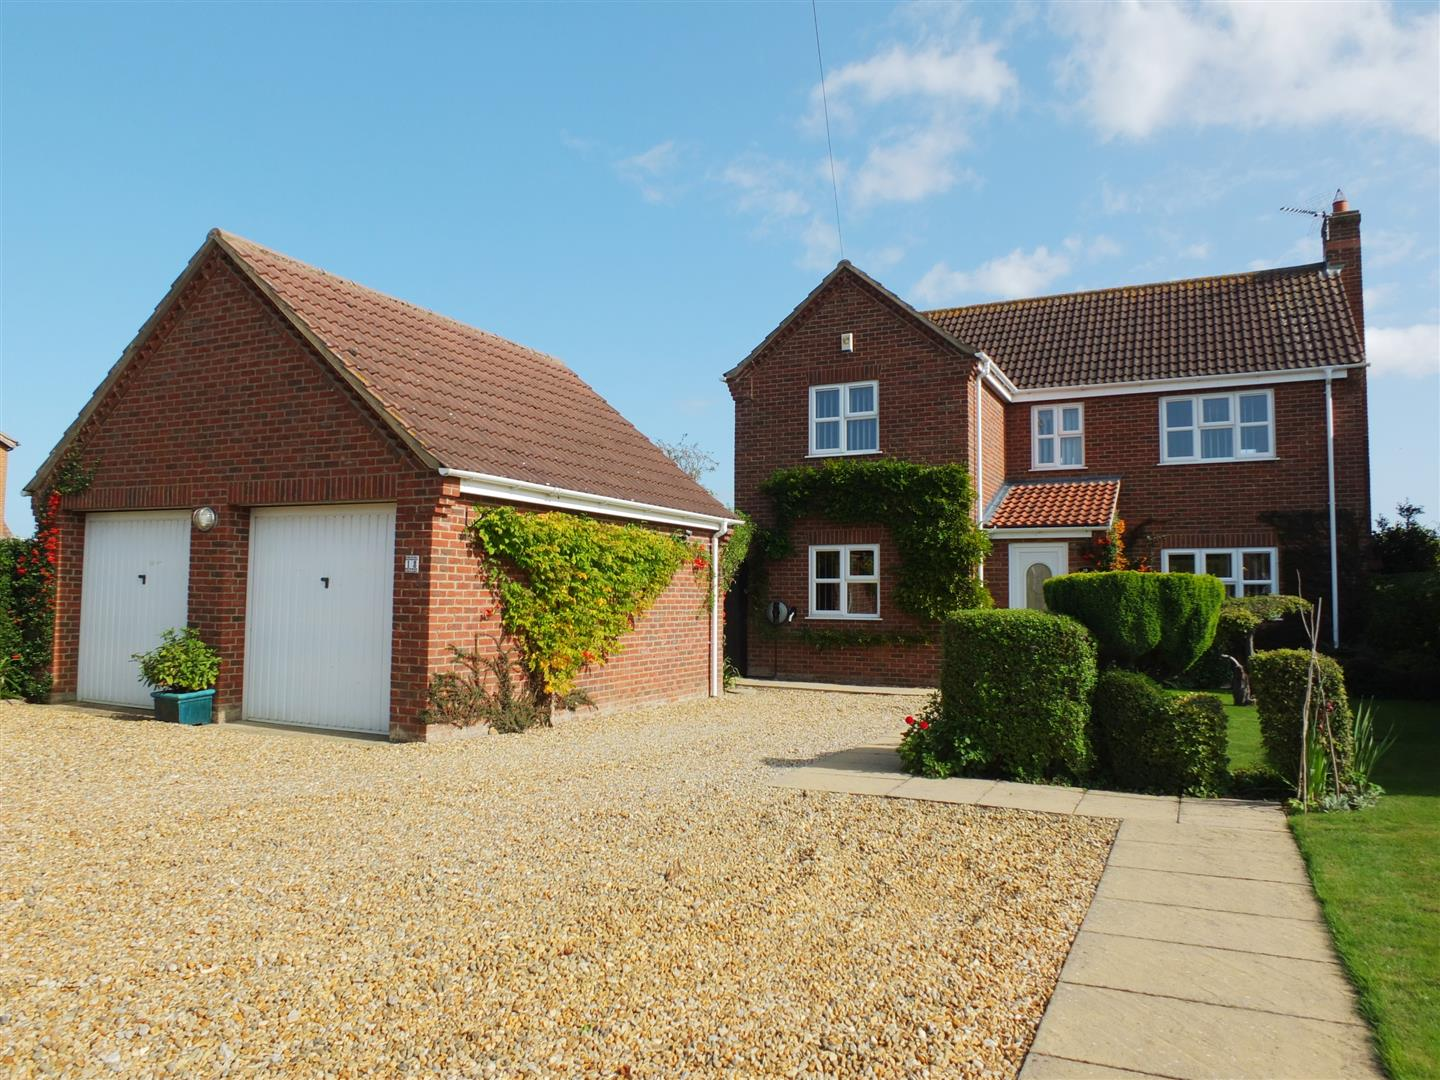 4 bed detached house for sale in Lutton Spalding, PE12 9HP 0